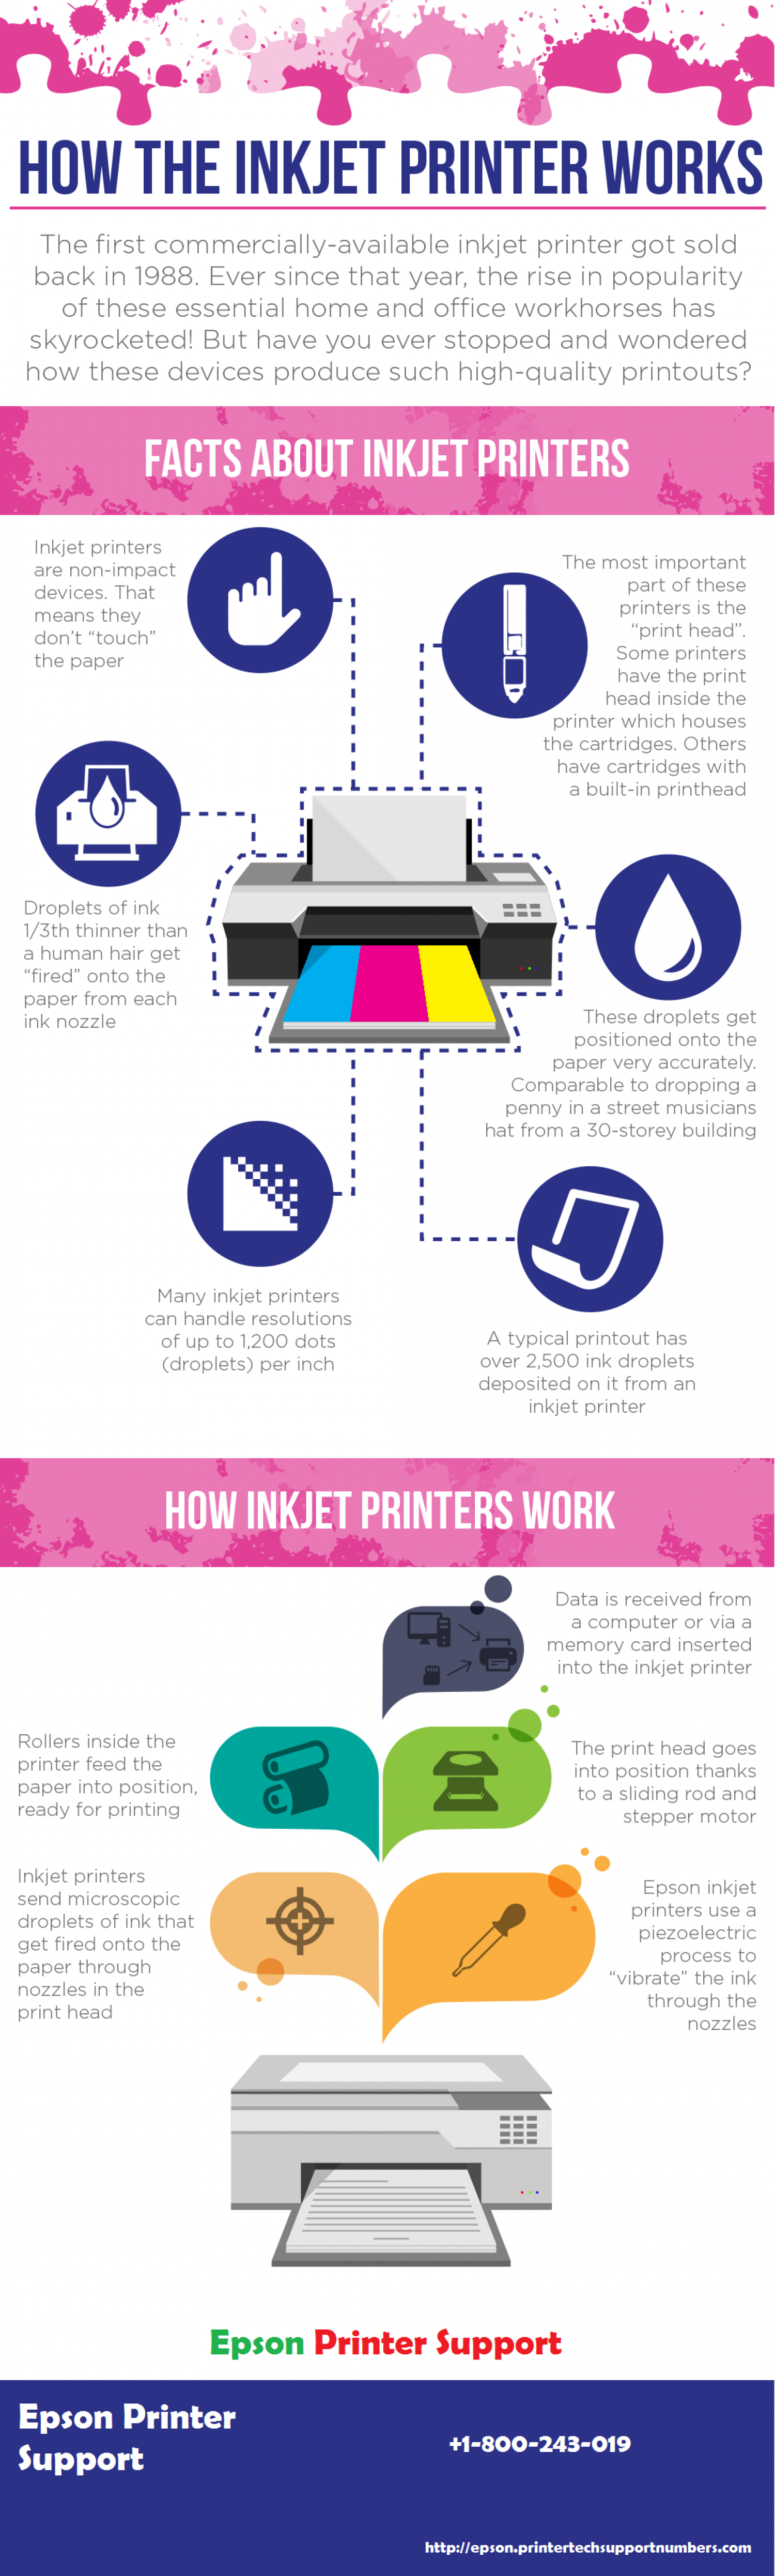 How the Inkjet Printer Works | Epson Printer Support  Infographic